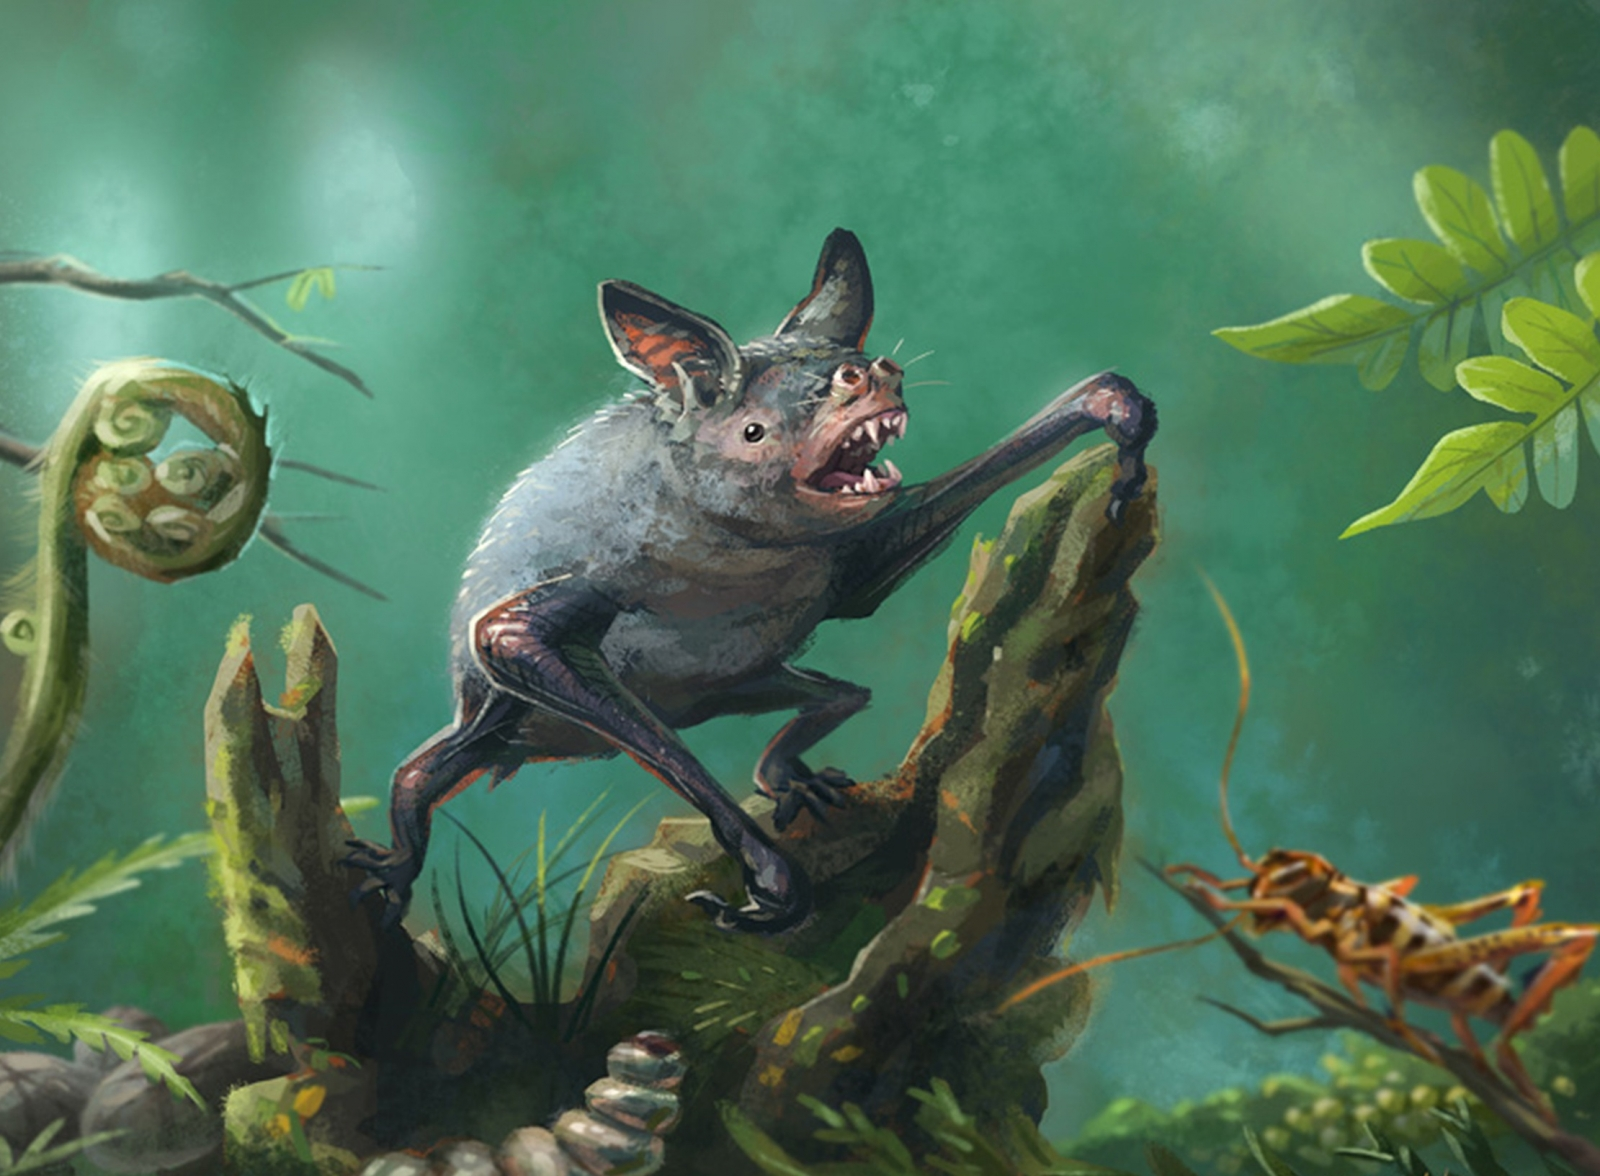 Giant extinct burrowing bat discovered by evolutionary biologists